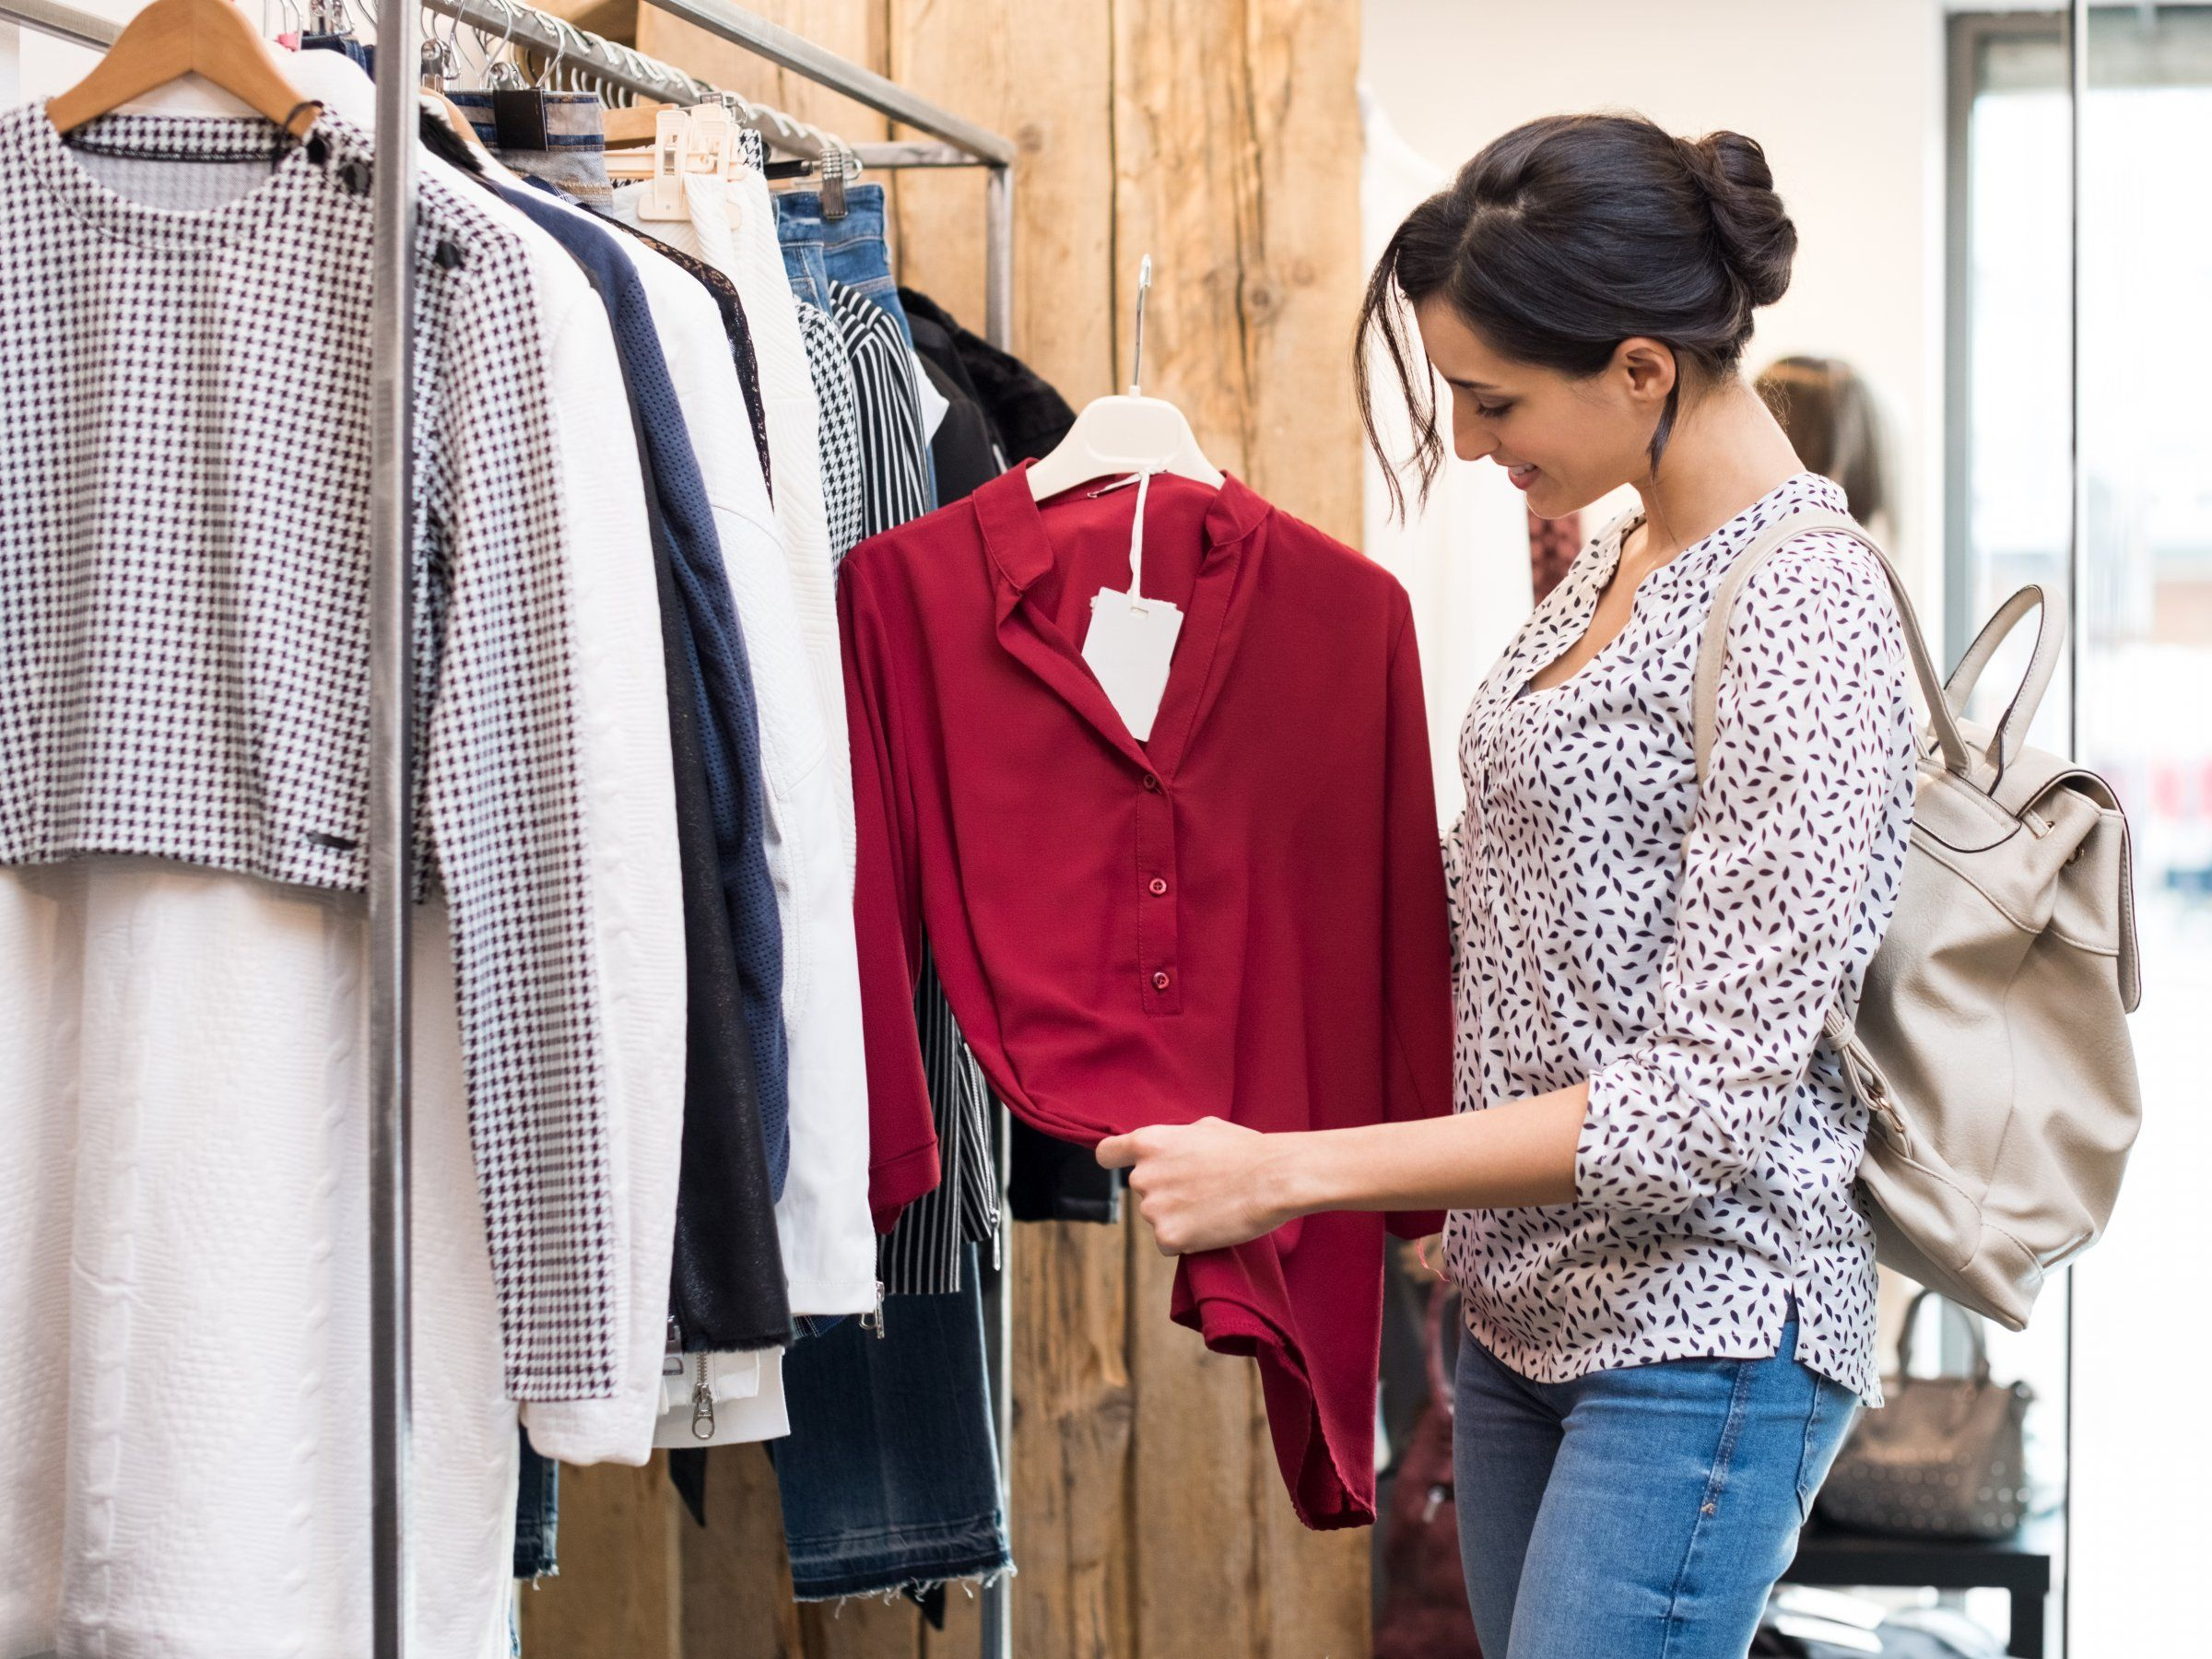 10 clothes shopping mistakes that are costing you money is part of Clothes Store Money - Here are some ways you could be wasting money on clothes, plus some shopping tips for buying clothes at cheaper prices